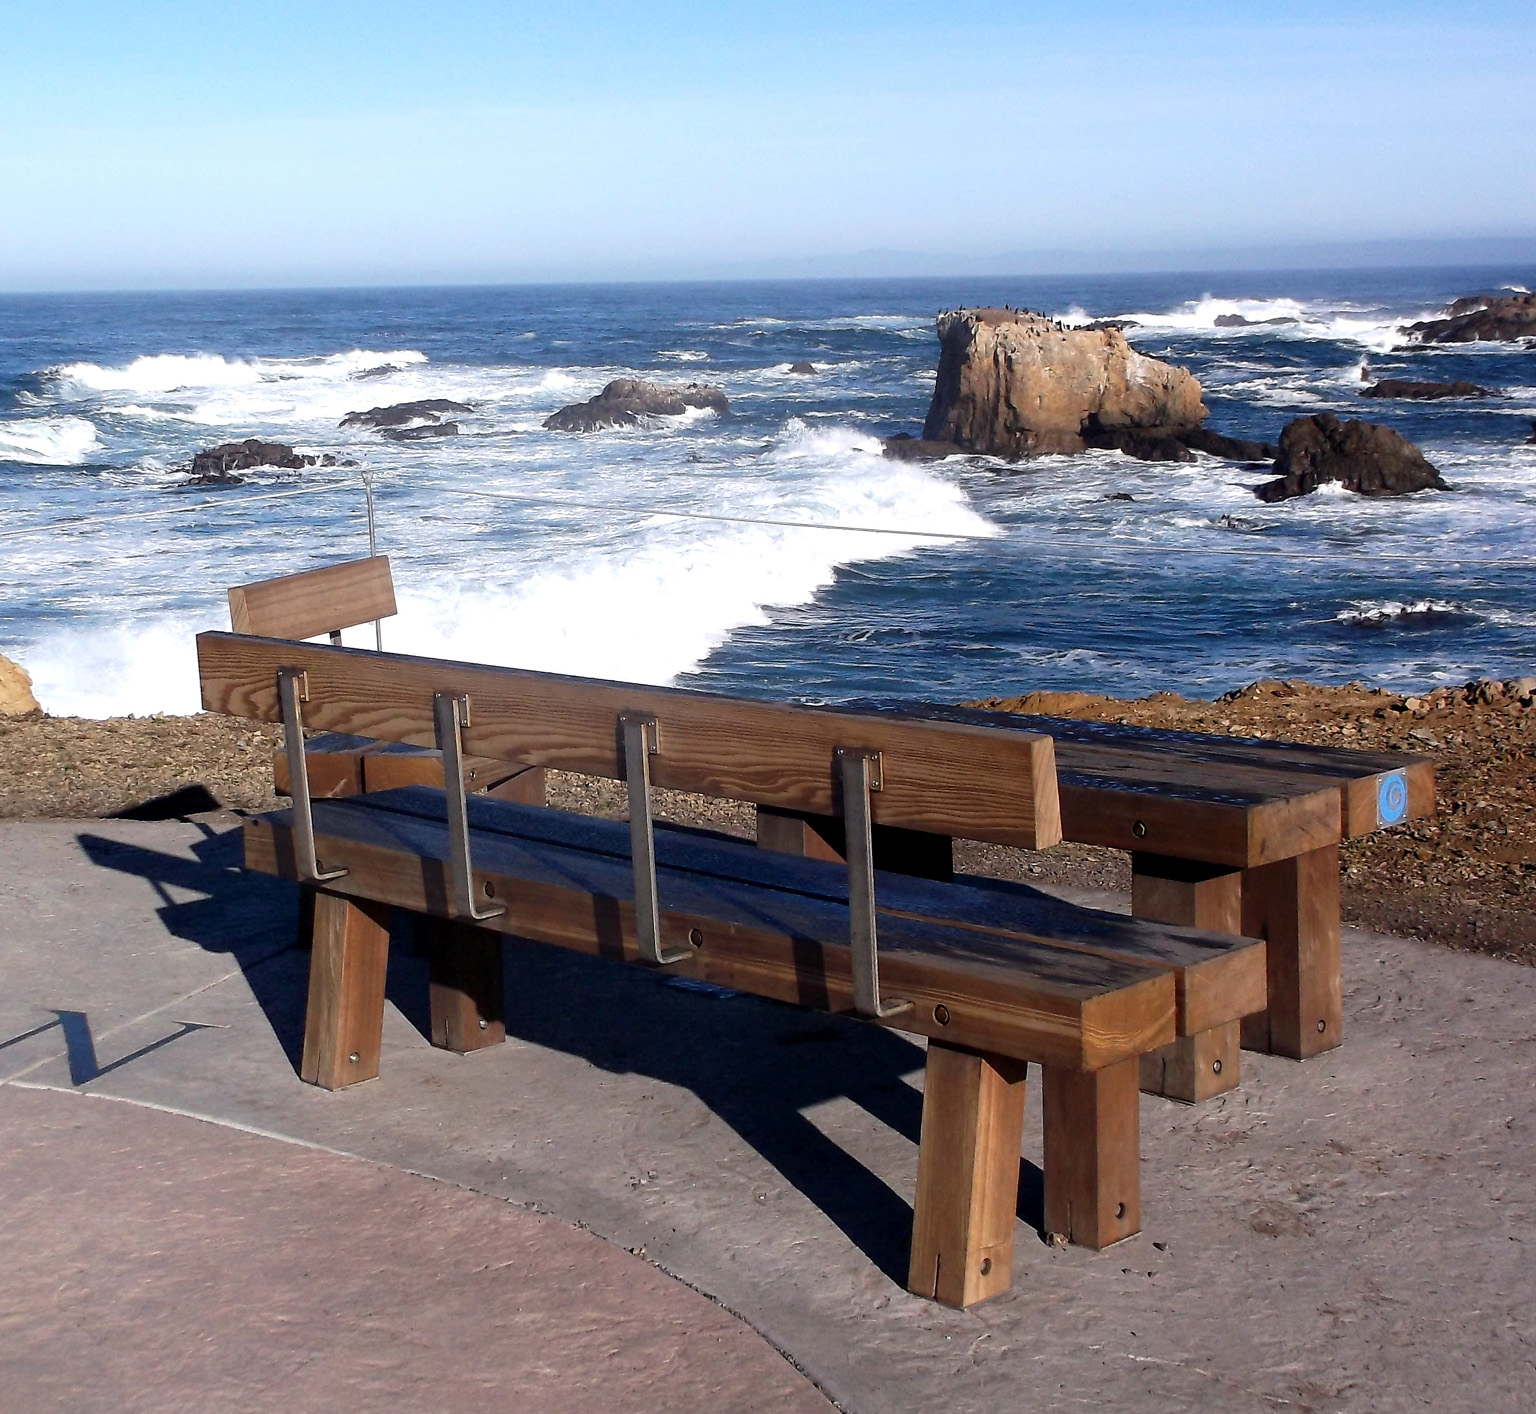 Wave watching bench and picnic spot, along Ka Kahleh Trail, part of the coastal trail system. Fort Bragg CA. Photo: Mary Charlebois